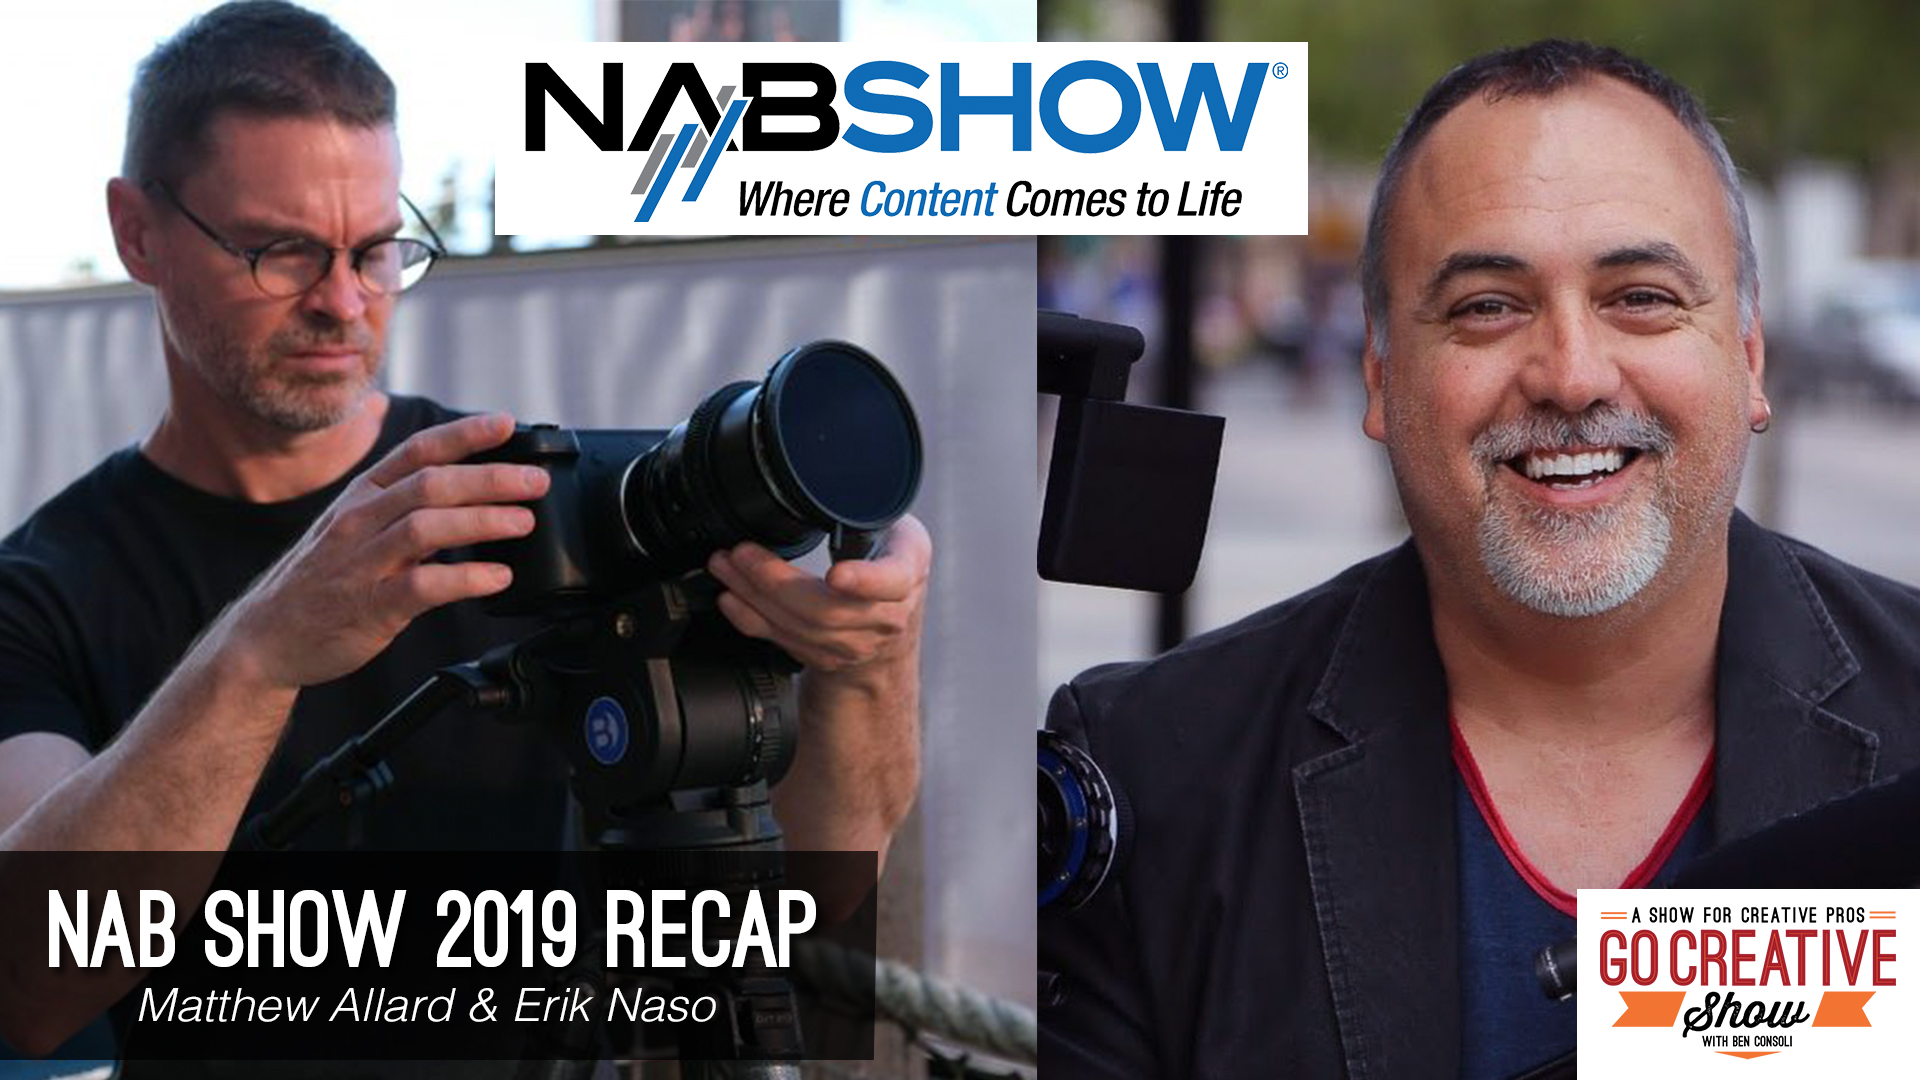 Matthew Allard and Erik Naso from NewsShooter join Go Creative Show host Ben Consoli to discuss NAB SHOW 2019 News